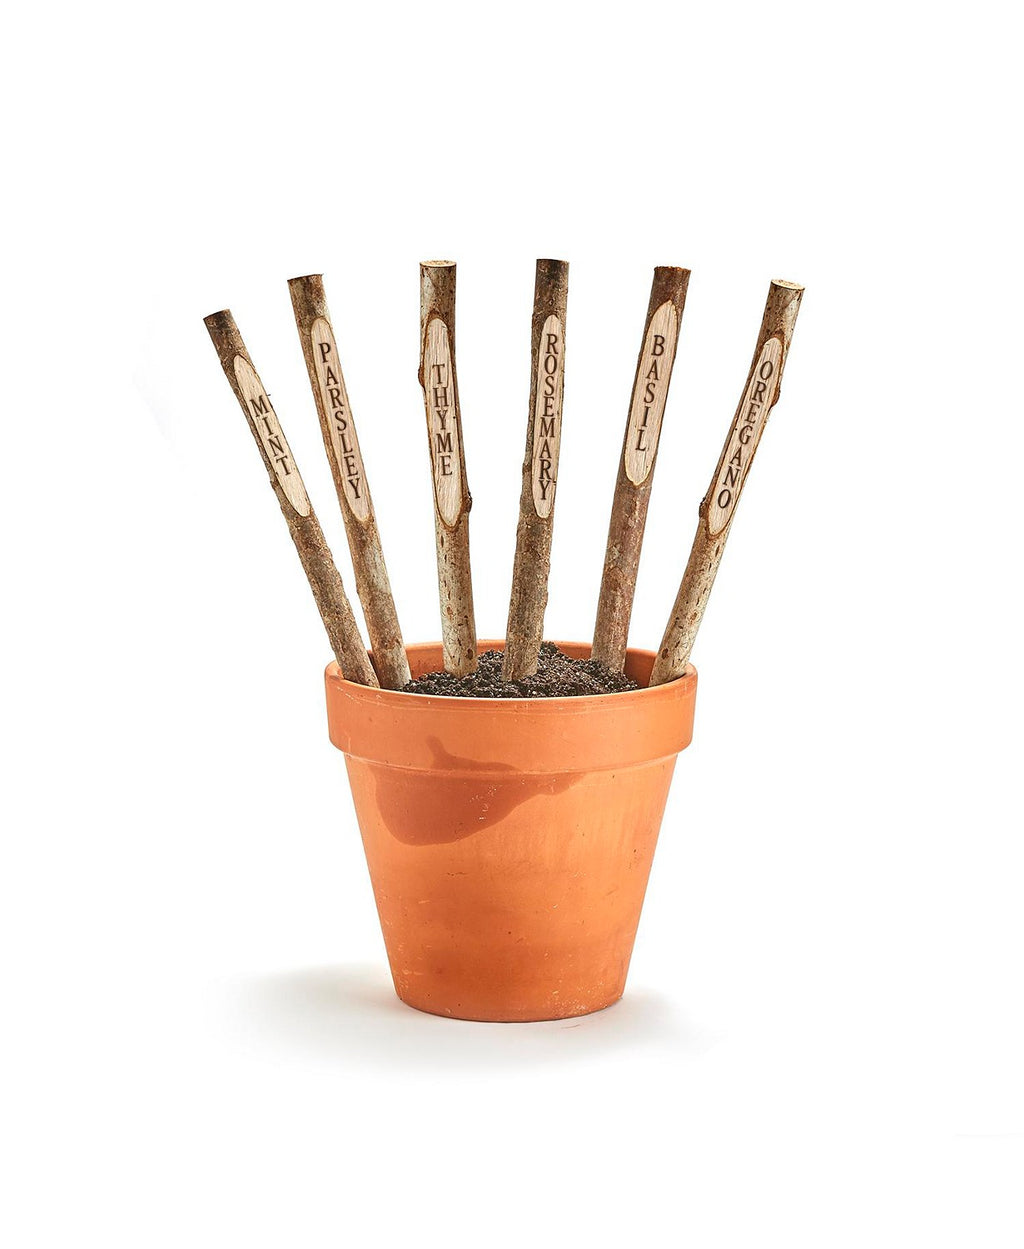 Set of 6 Hand-Crafted Wooden Stick Garden Markers Includes Rosemary, Thyme, Parsley, Basil, Mint, Oregano - Chaste Wood